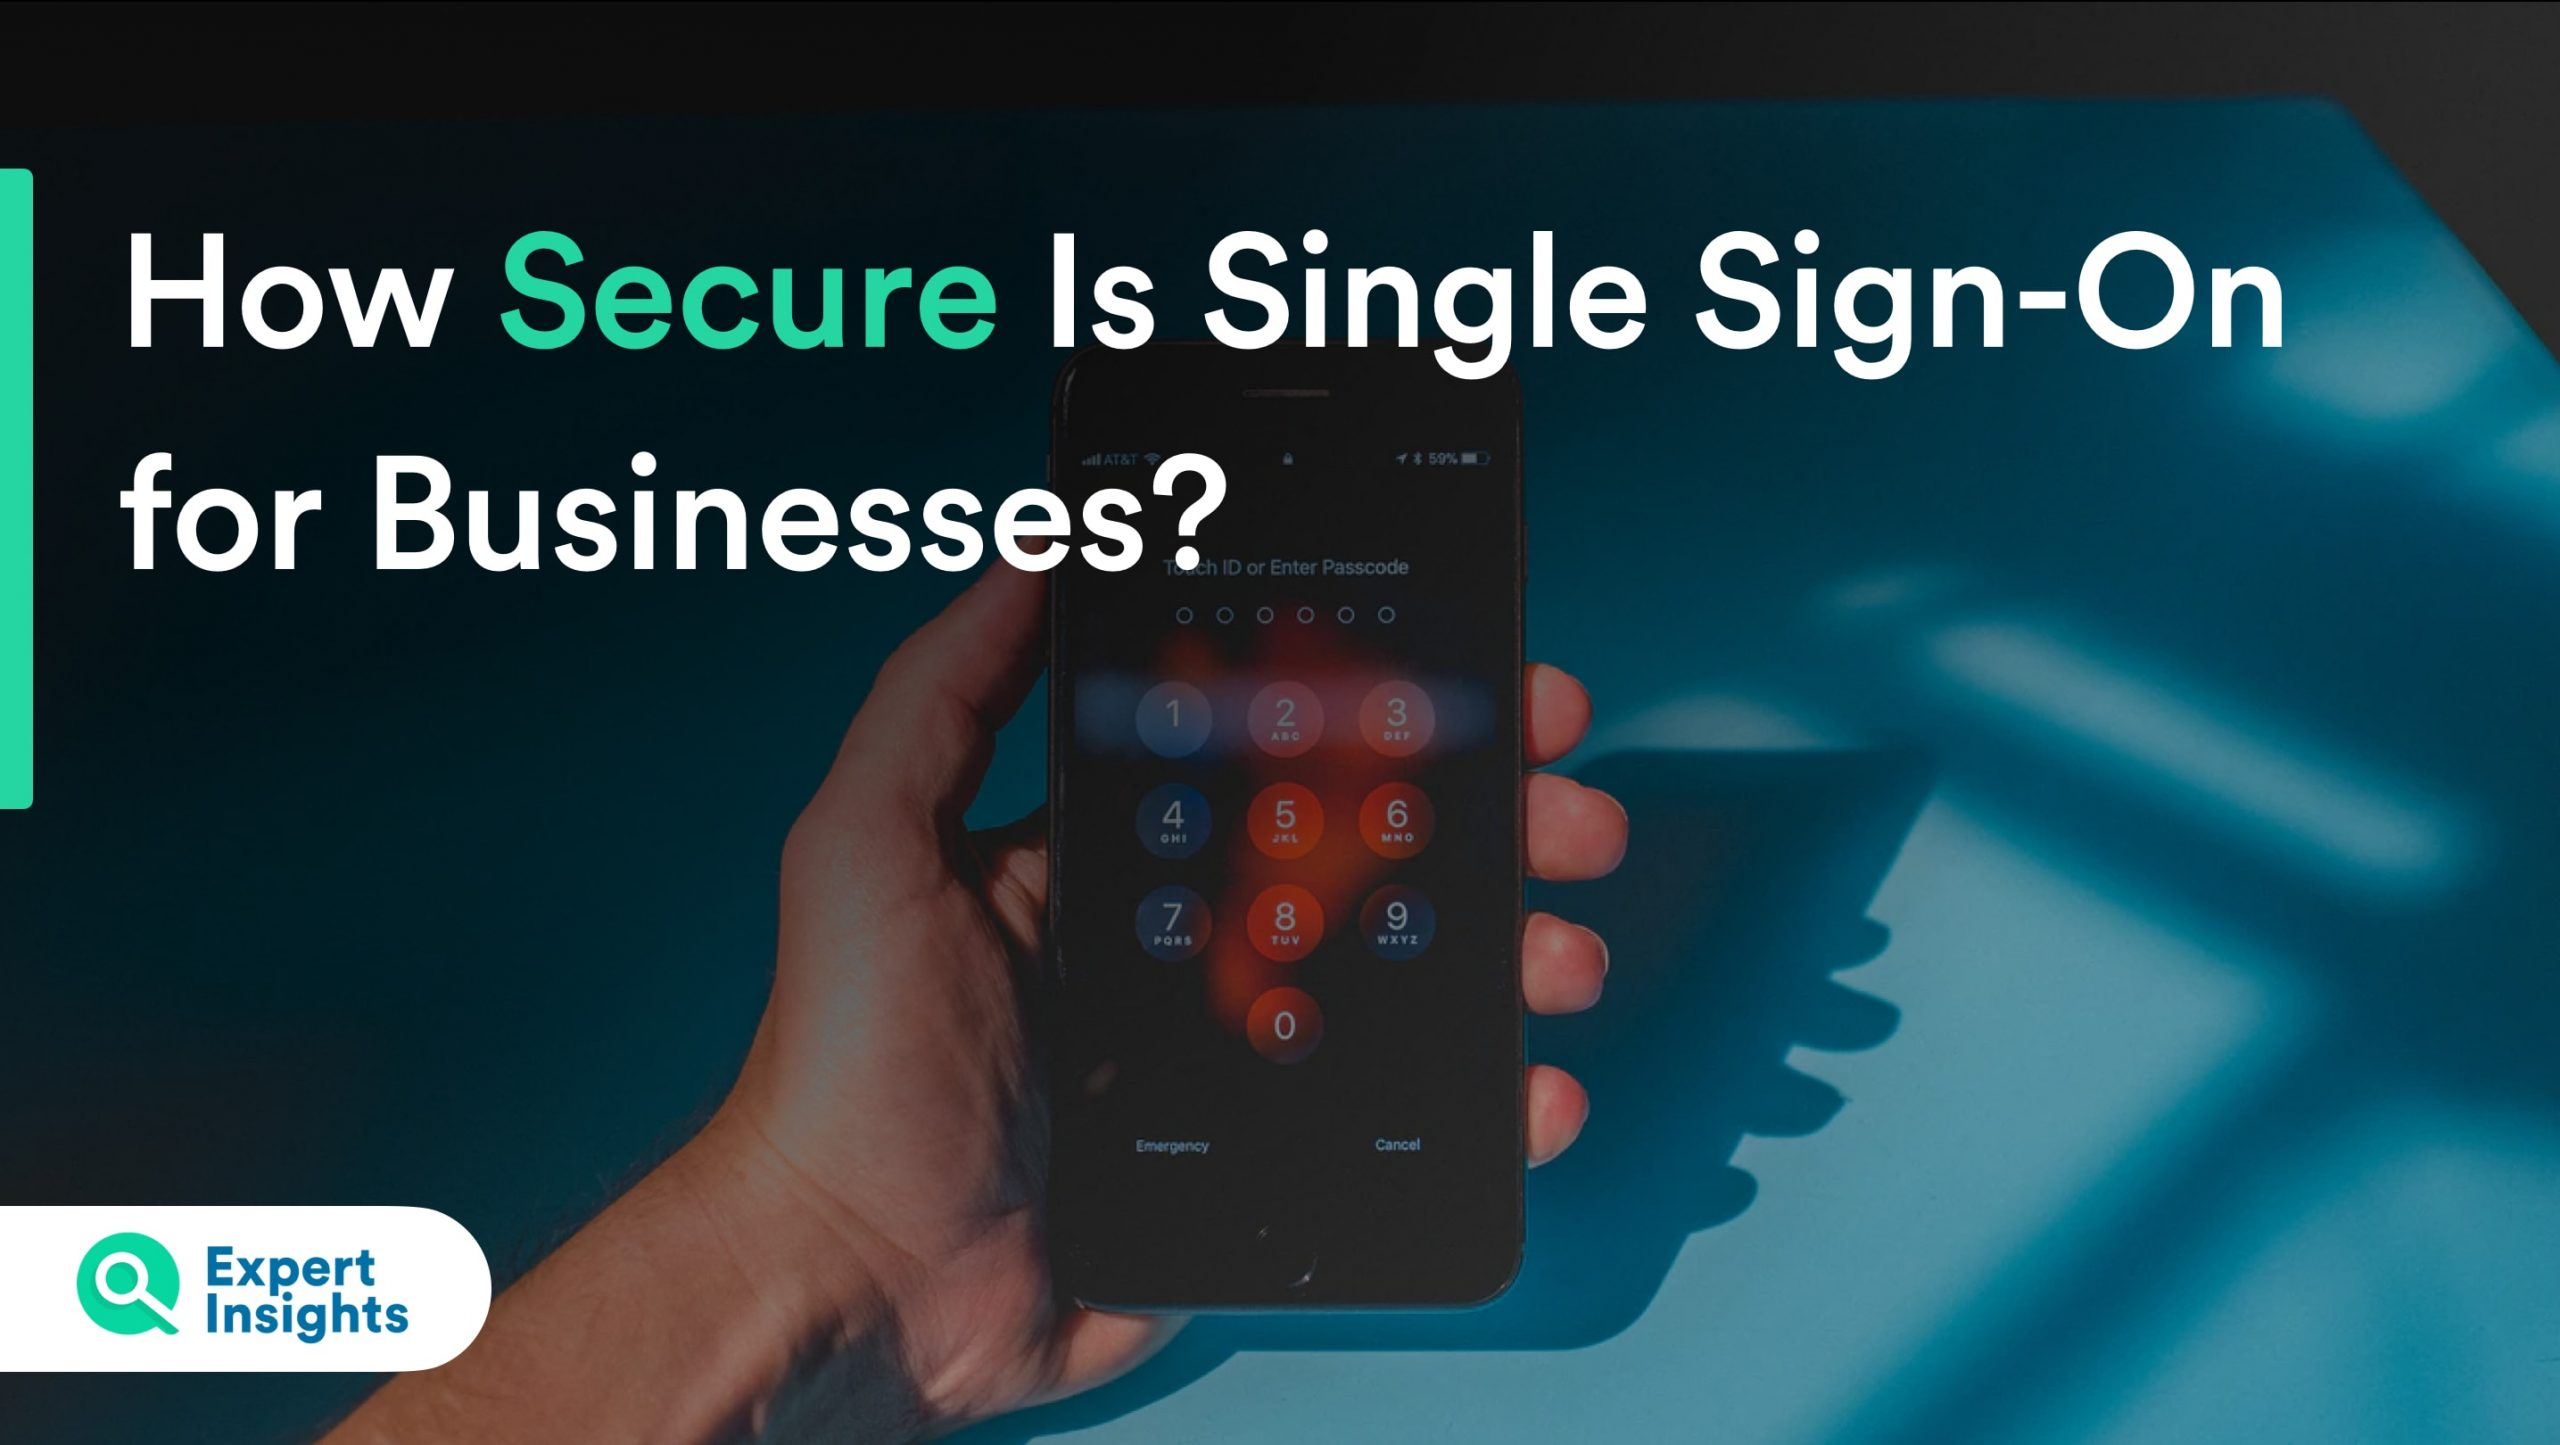 How Secure Is Single Sign On?